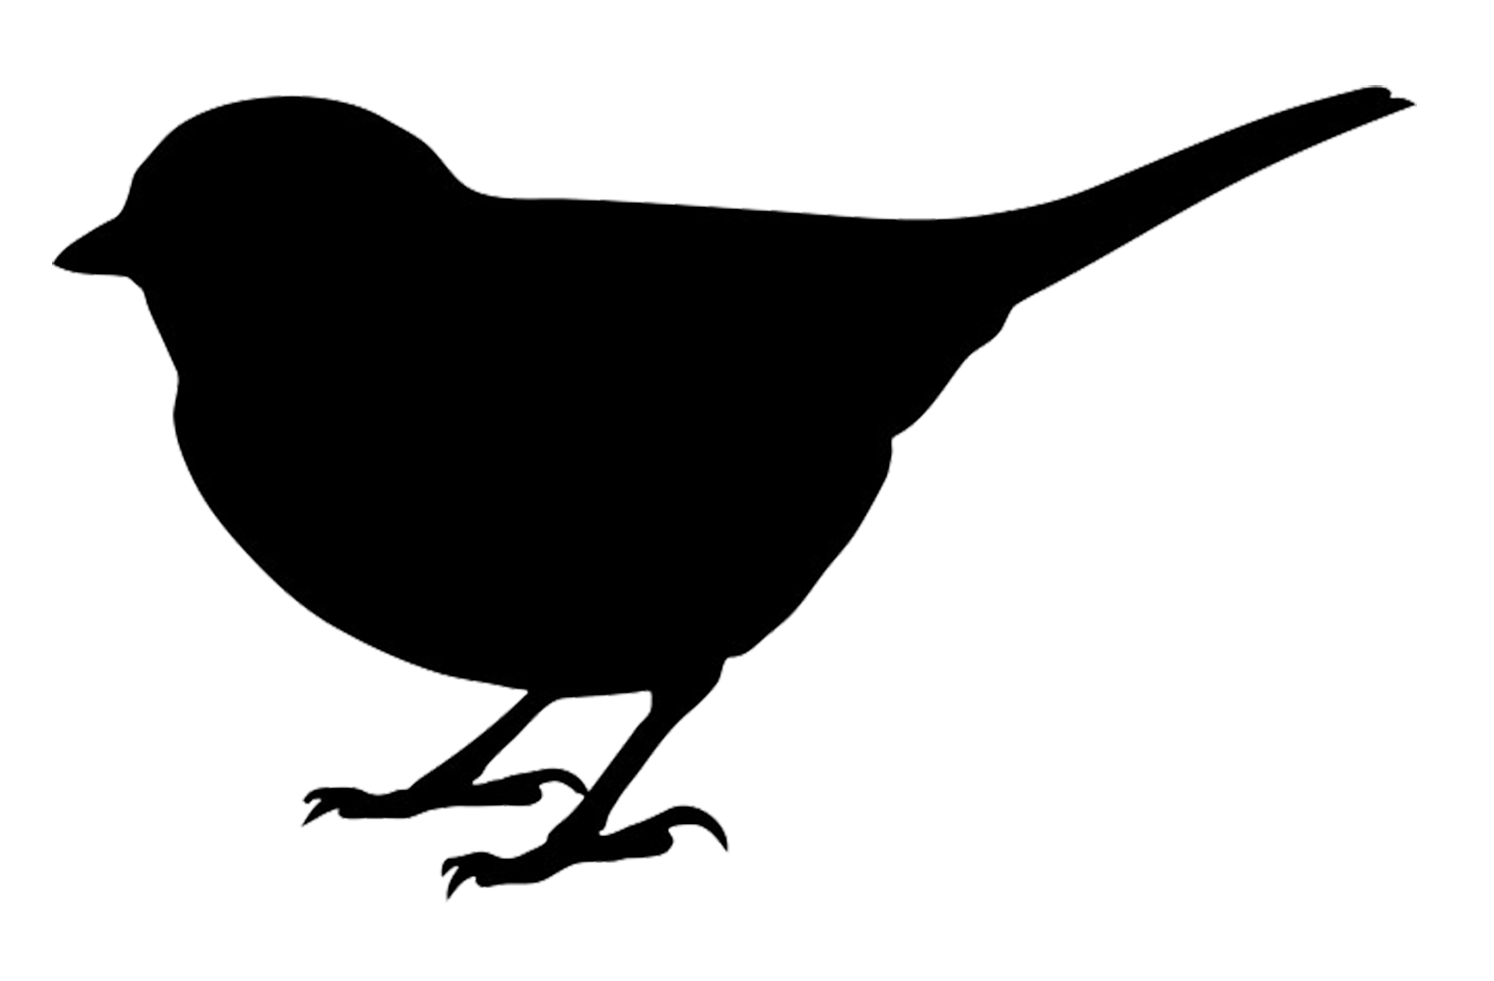 quail silhouette clip art - photo #4